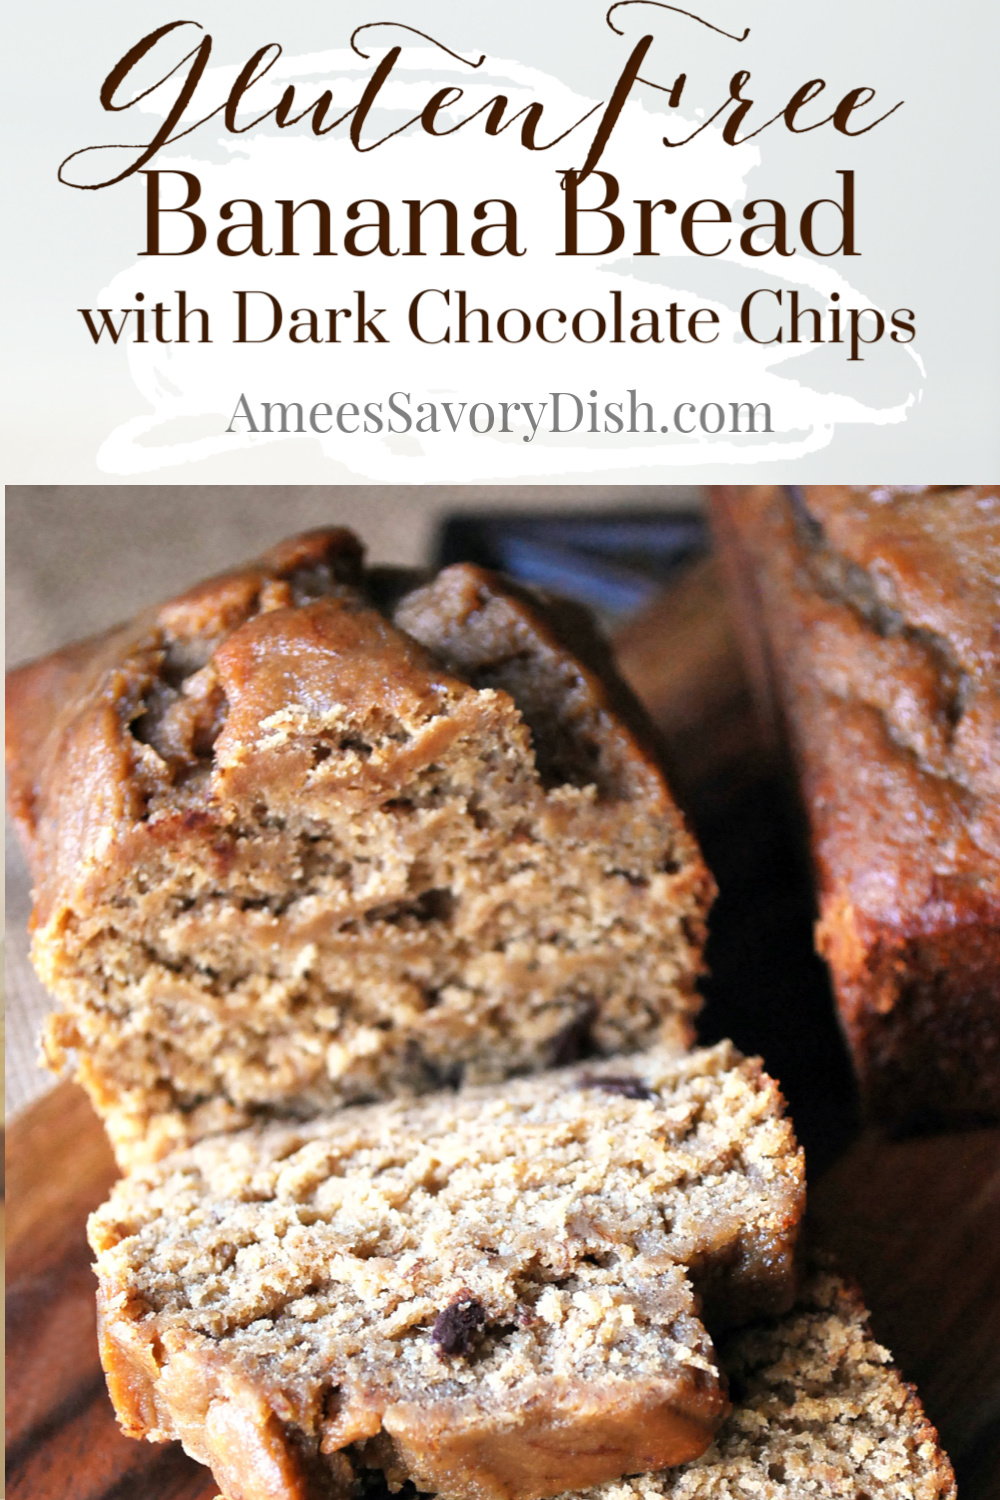 A moist and delicious recipe for wheat-free dark chocolate chip banana bread made with a blend of brown rice and oat flour that's just as amazing as the original. #glutenfreebaking #glutenfreebananabread #bananabread via @Ameecooks